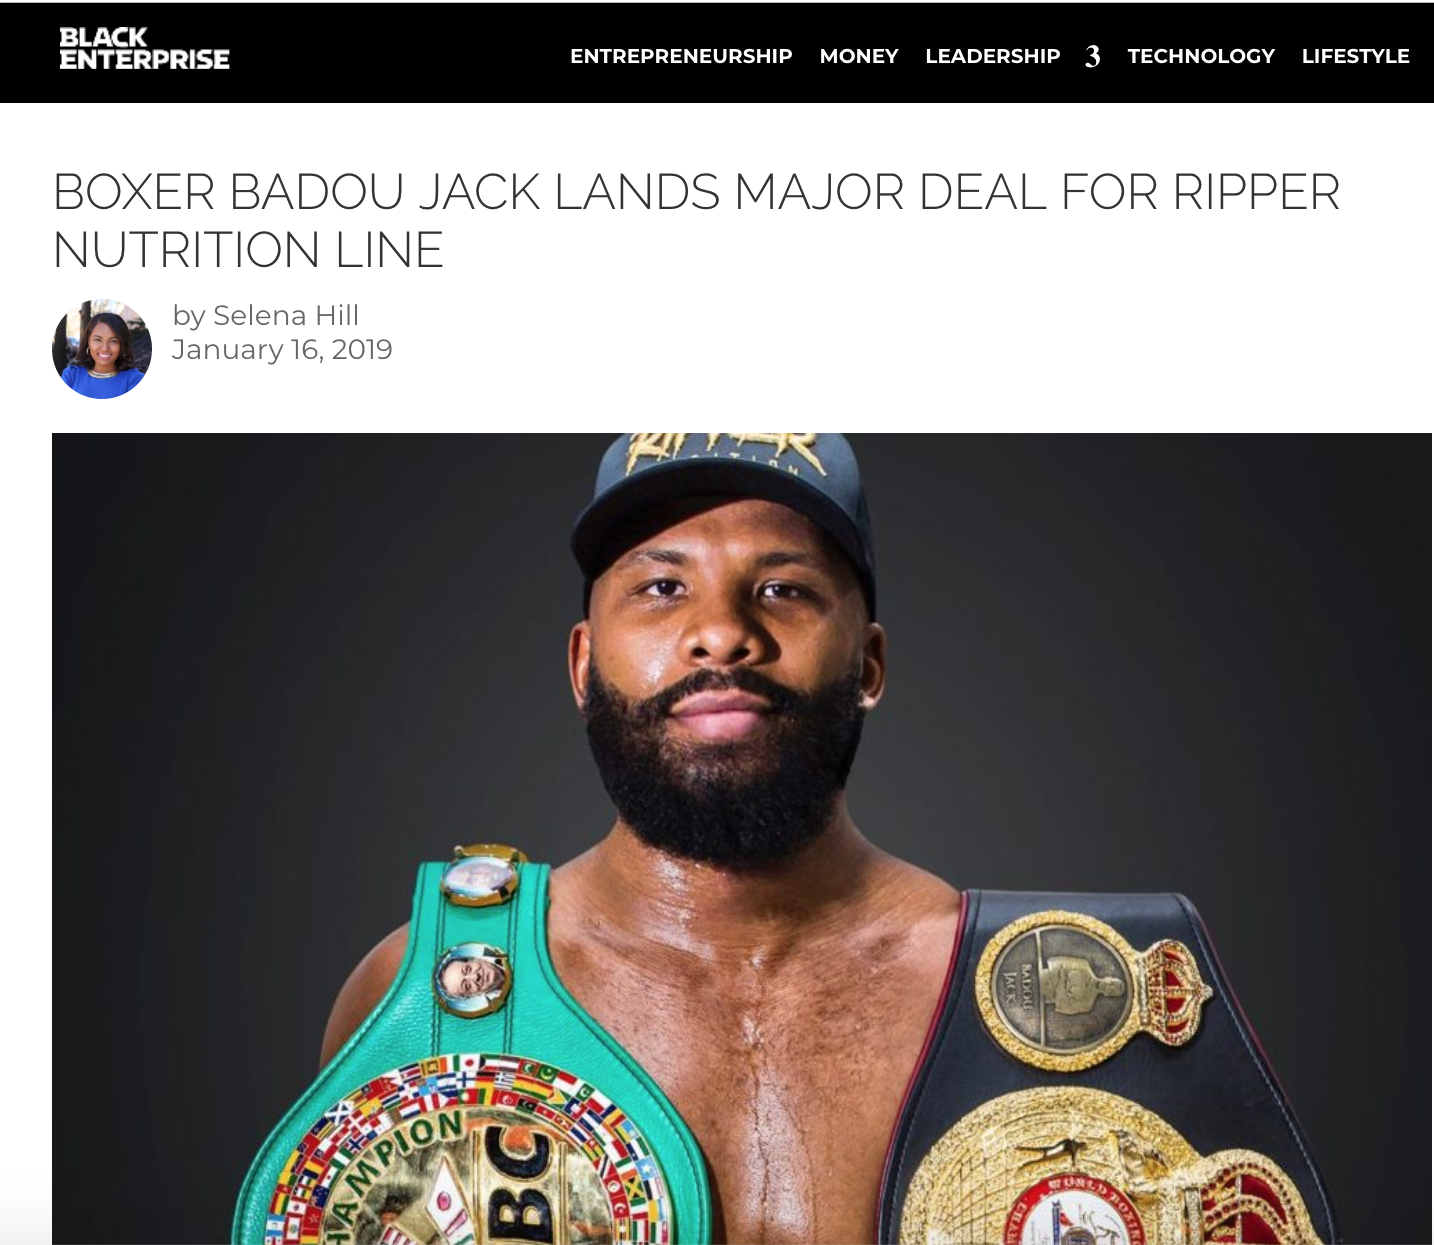 badou prepares for the ring with the help from his secret weapon - ripper nutrition